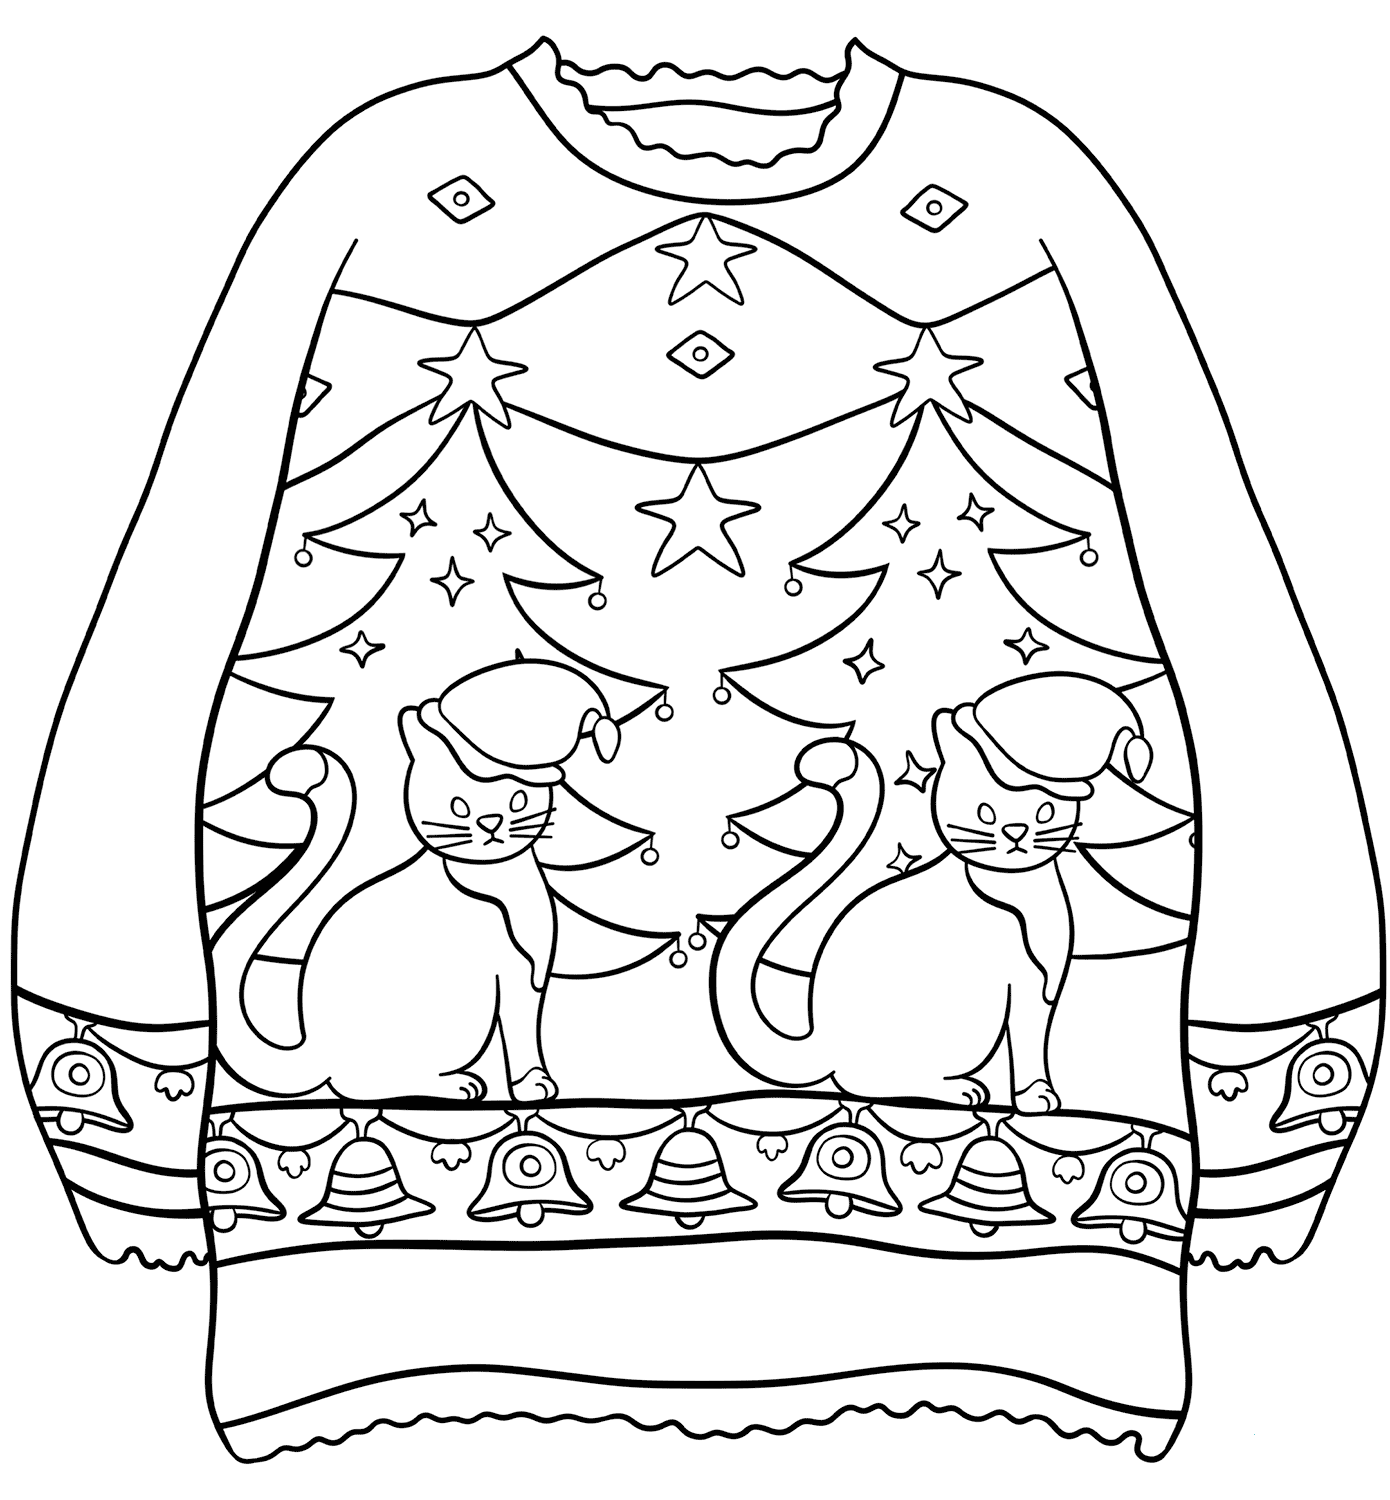 Ugly Christmas Sweater Coloring Pages Printable